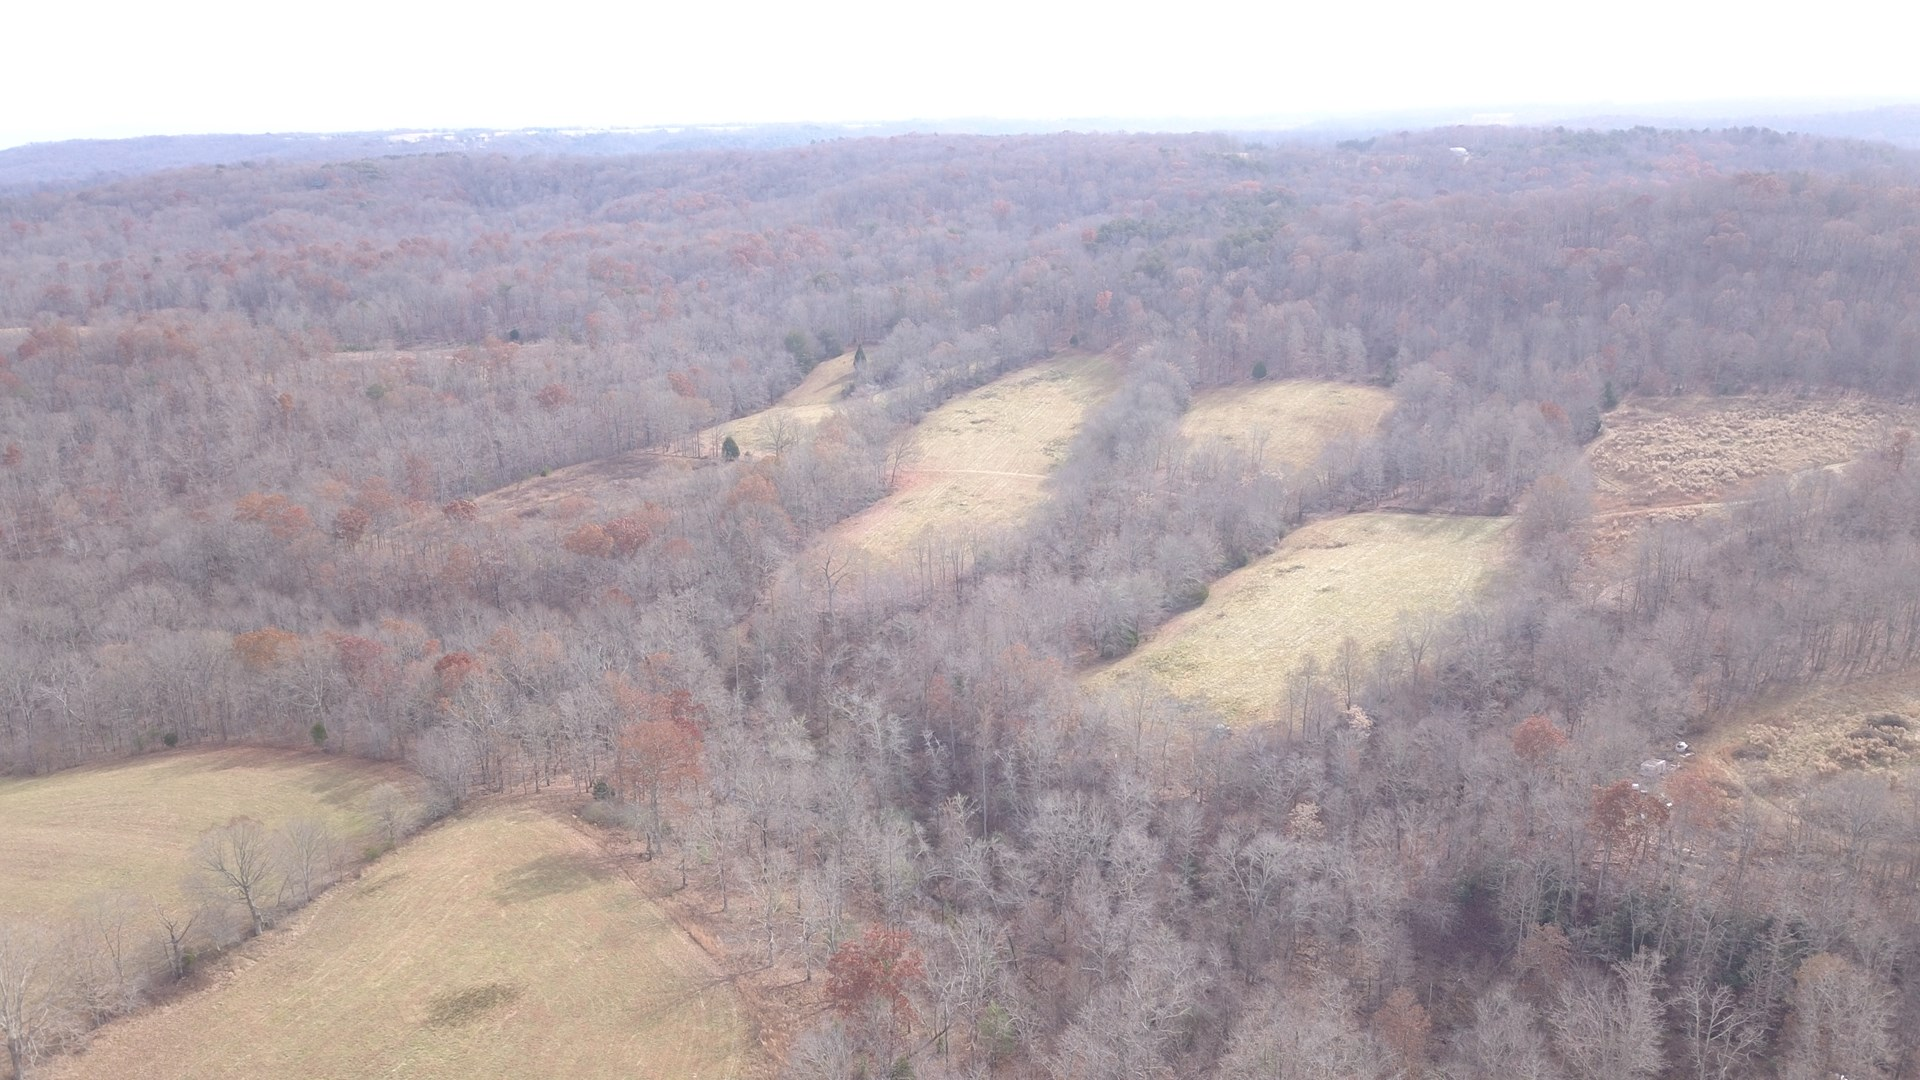 Hunting & Farming Land for Sale, in Pikeville Tennessee